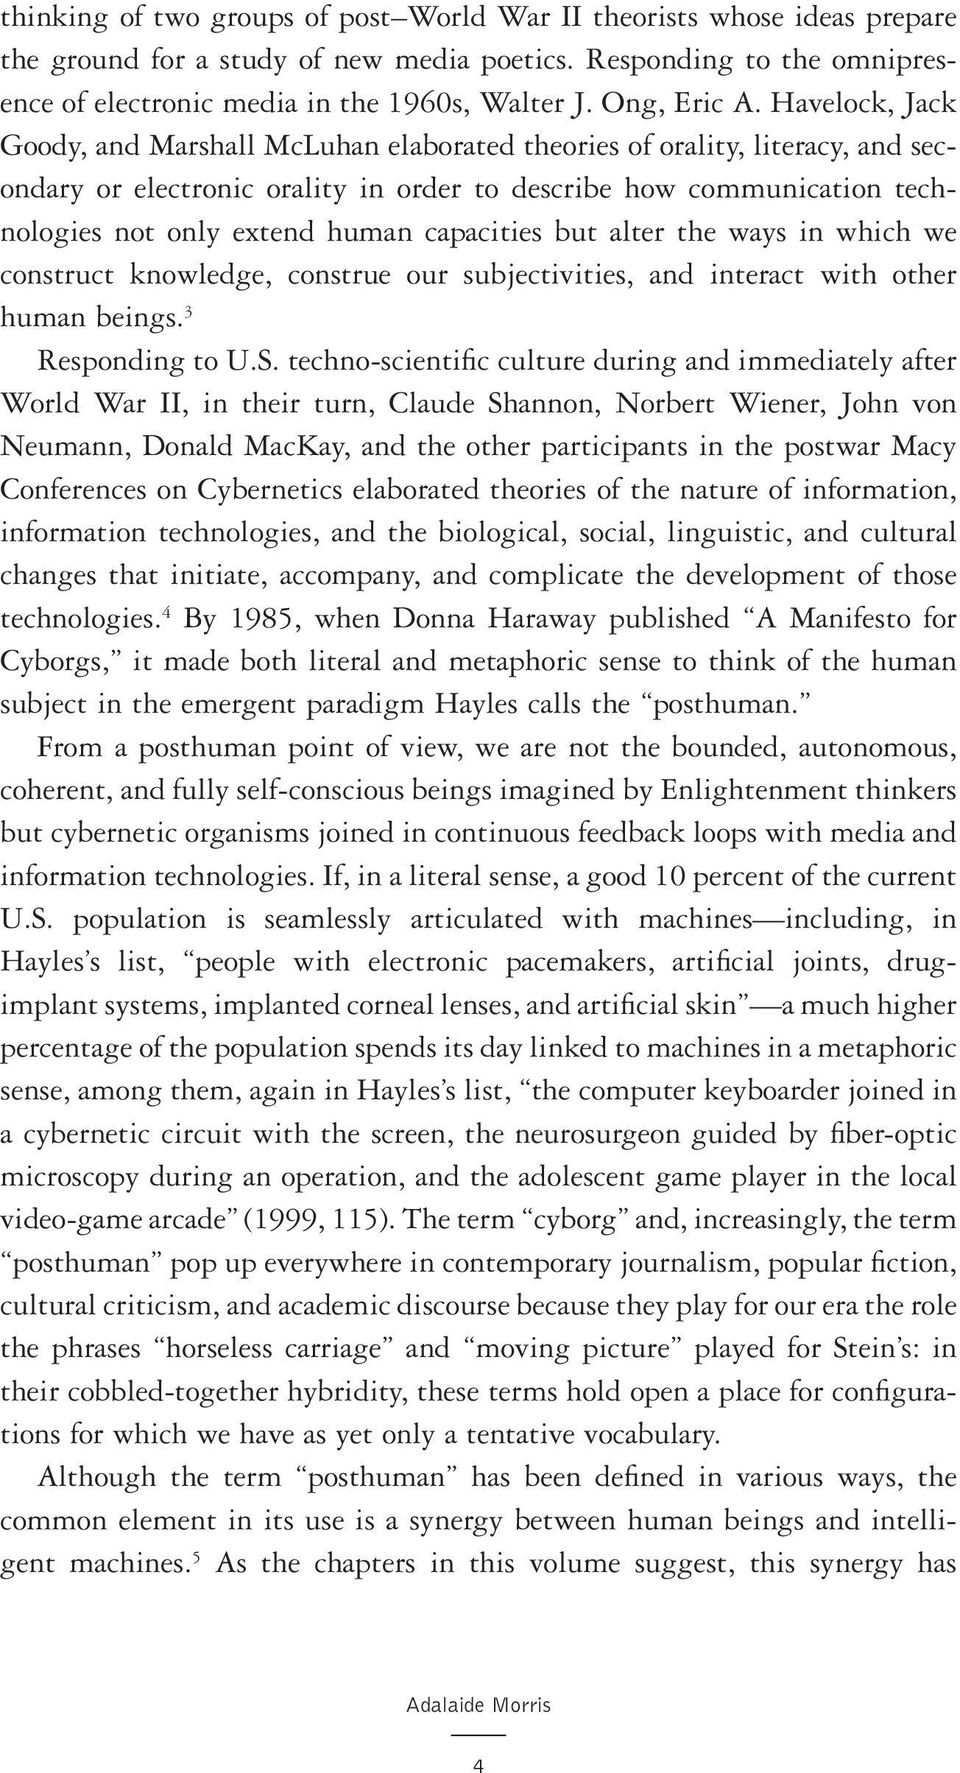 Havelock, Jack Goody, and Marshall McLuhan elaborated theories of orality, literacy, and secondary or electronic orality in order to describe how communication technologies not only extend human